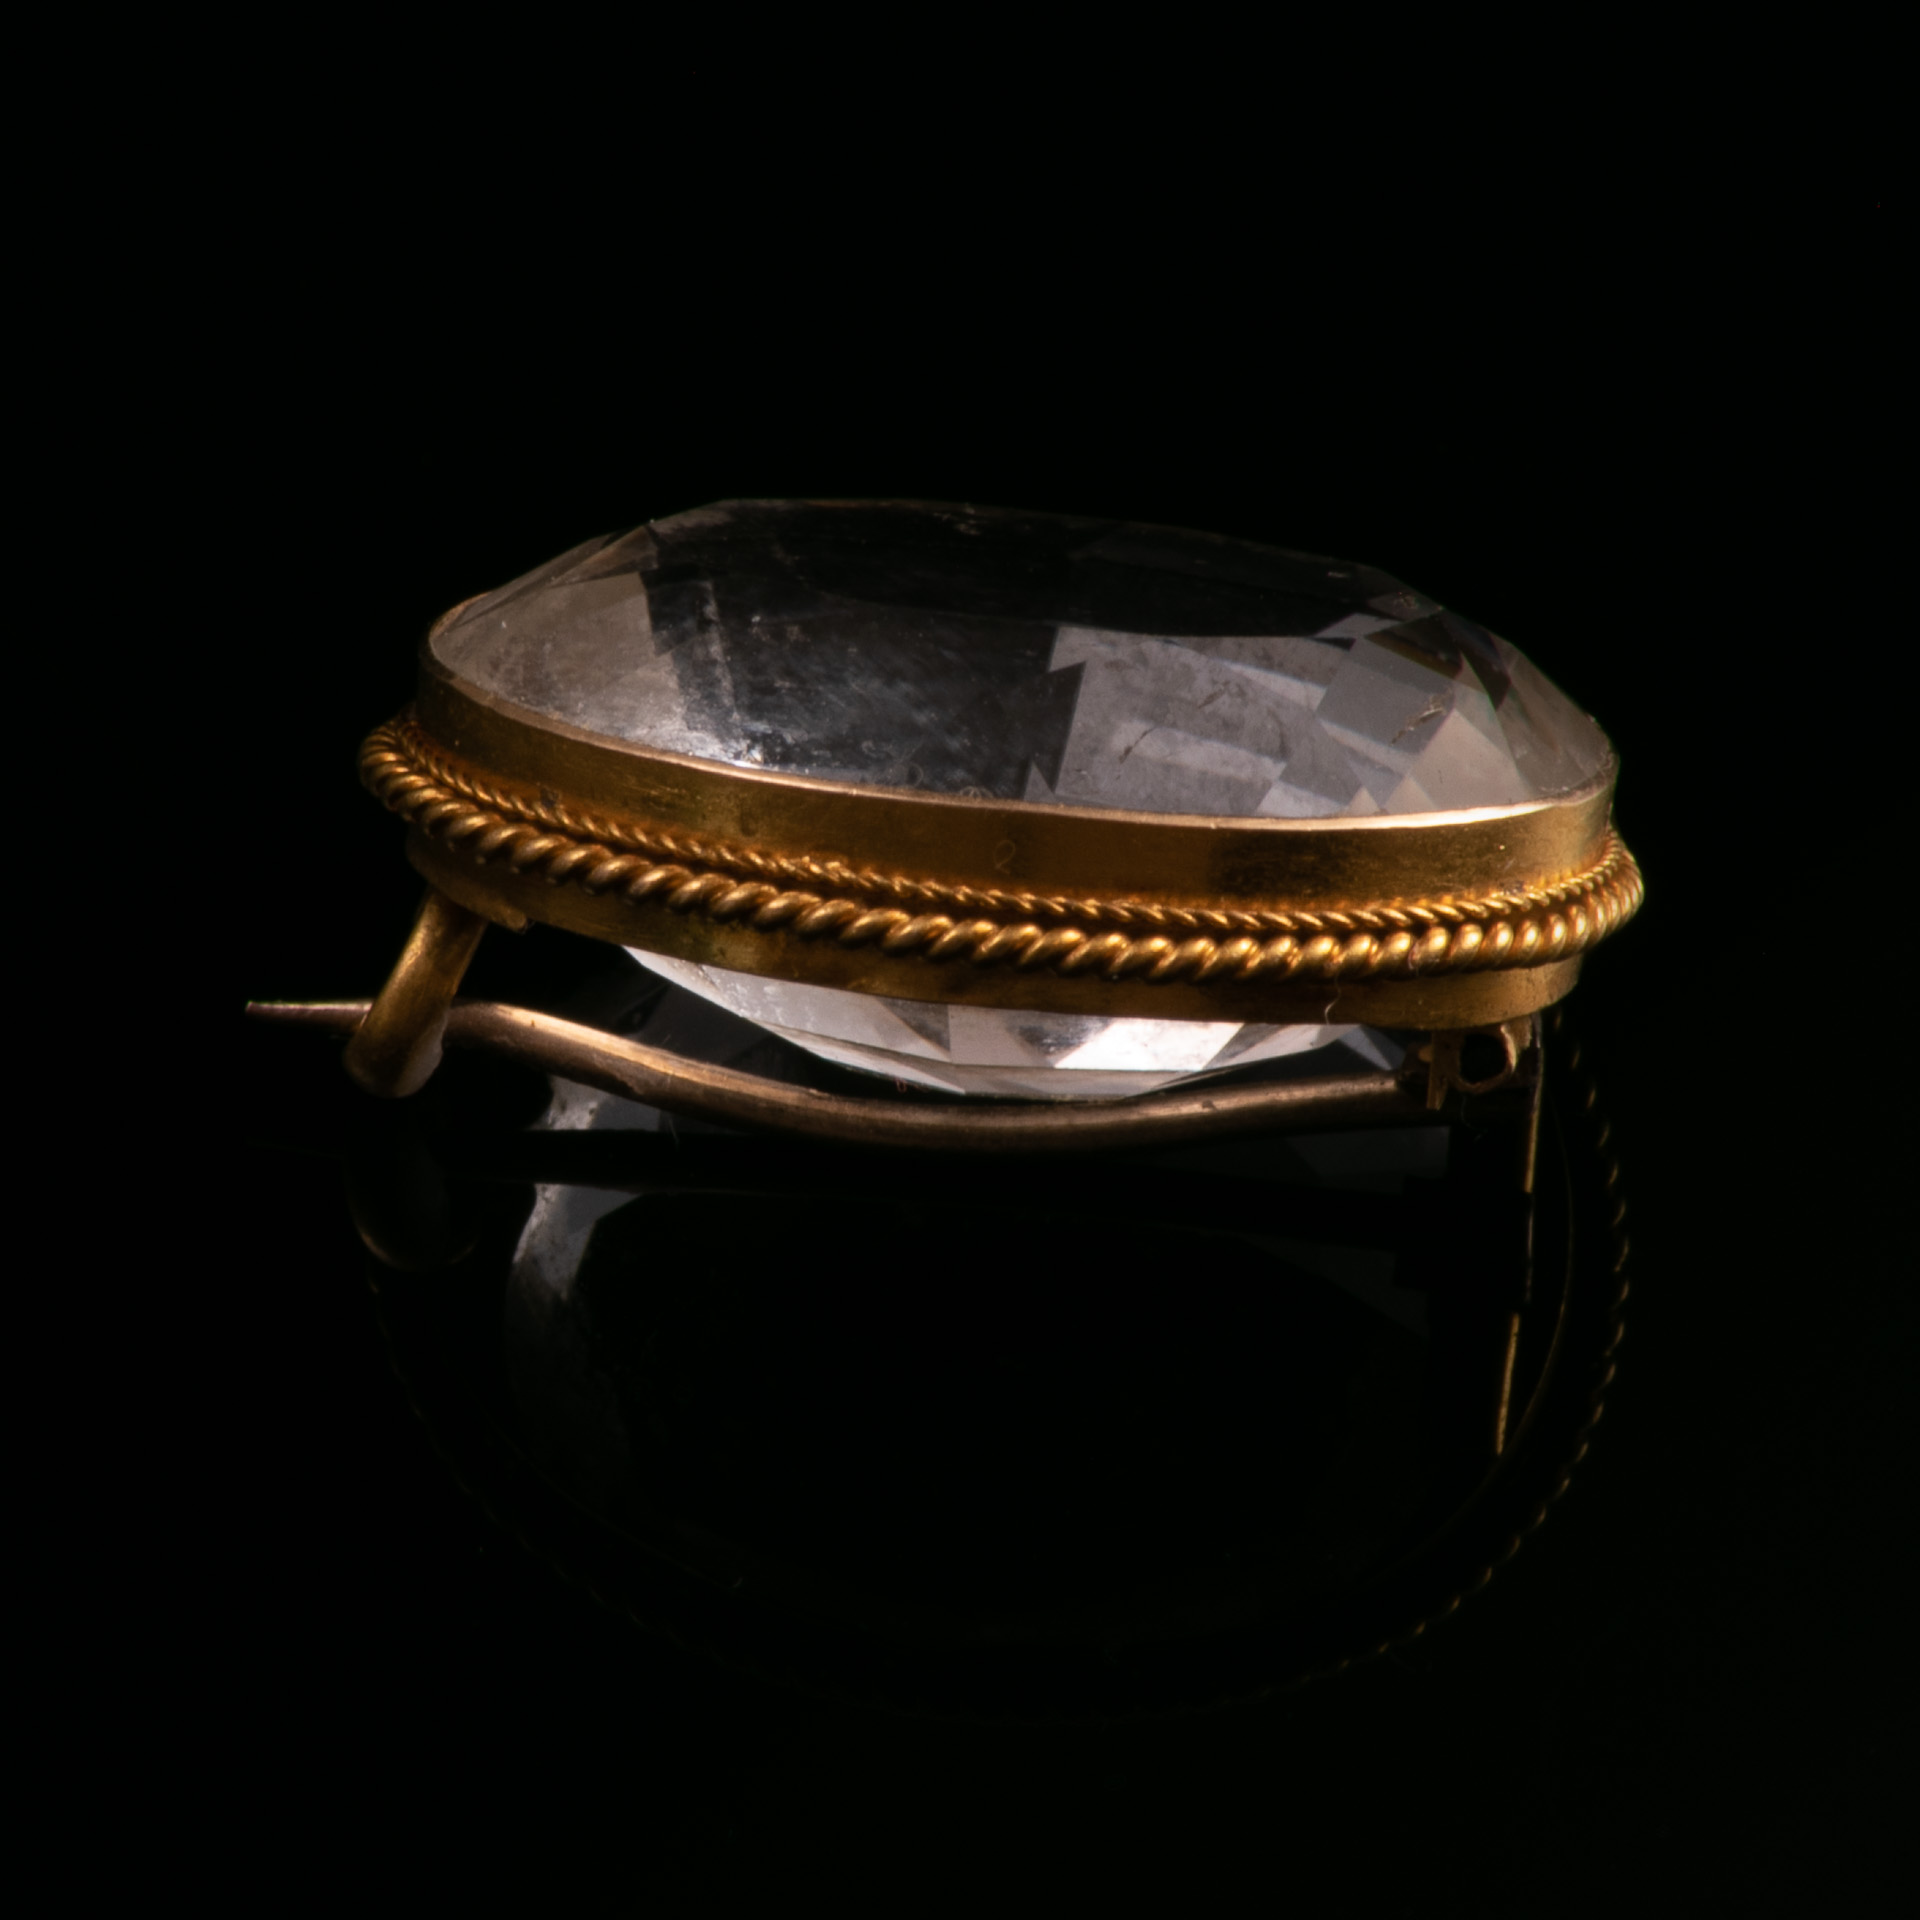 18ct Gold Victorian Faceted Rock Crystal Brooch - Image 4 of 5